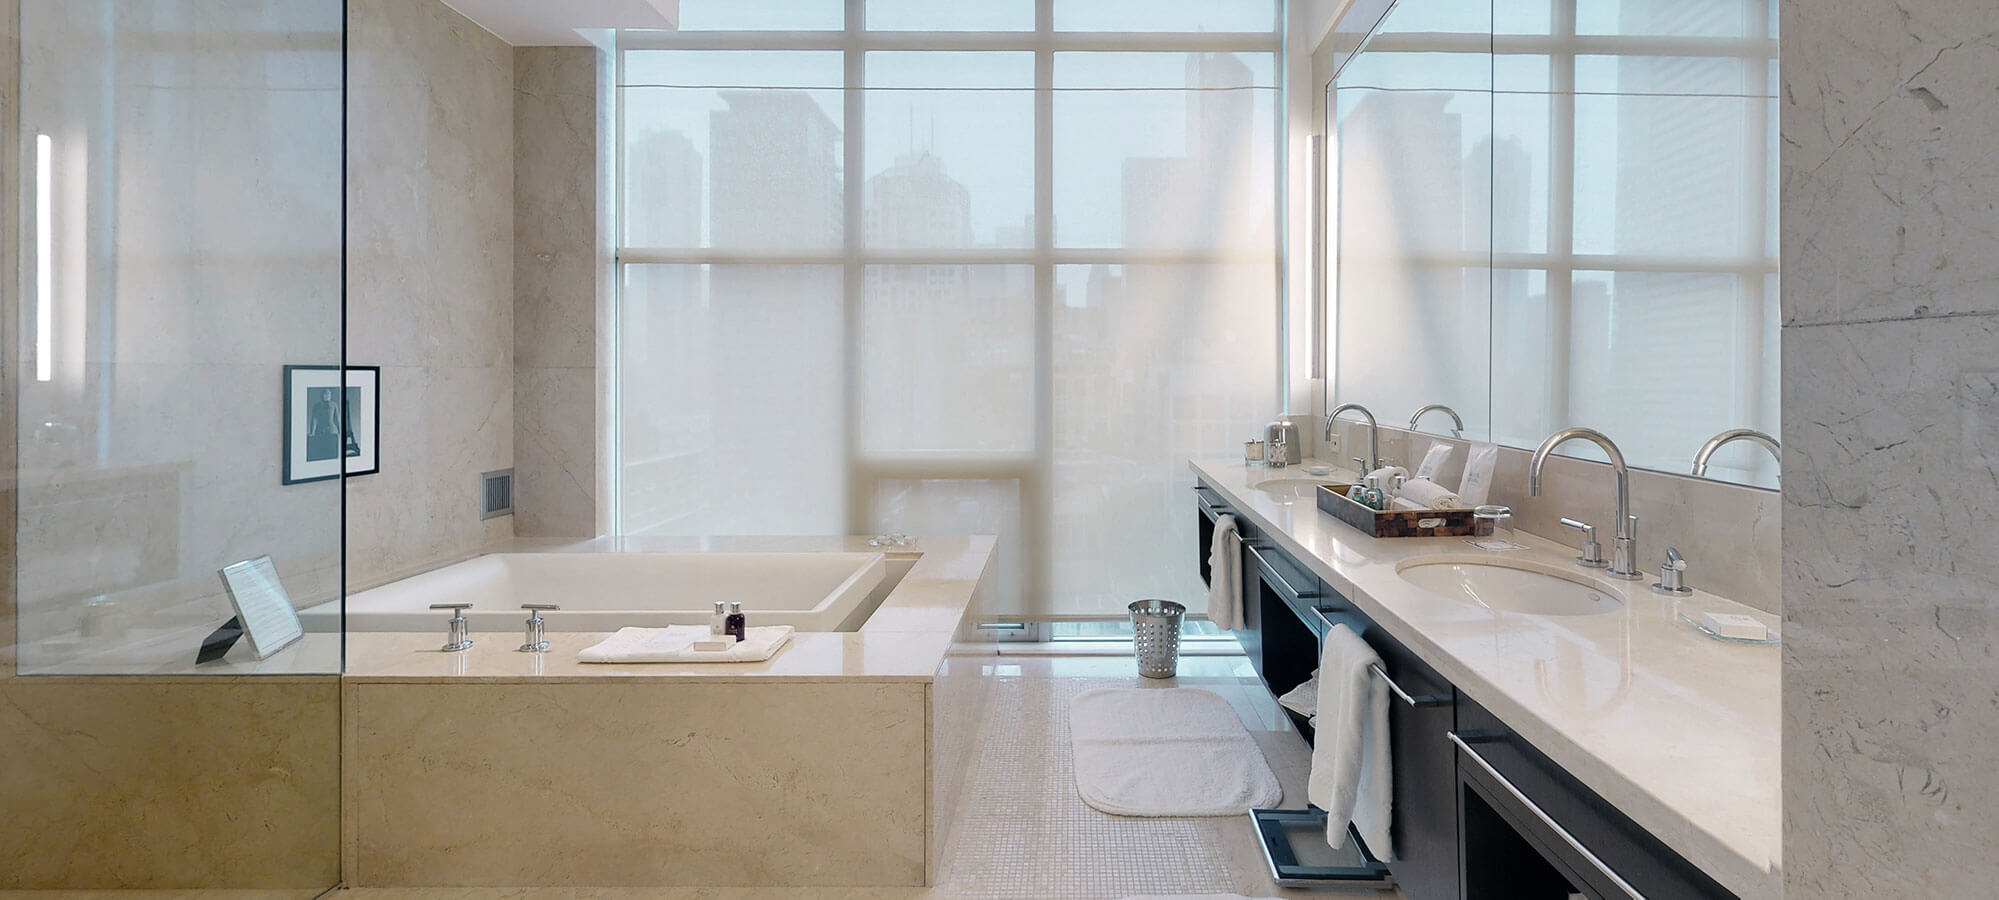 Marble bathroom at The SoHo Hotel 3-storey Penthouse